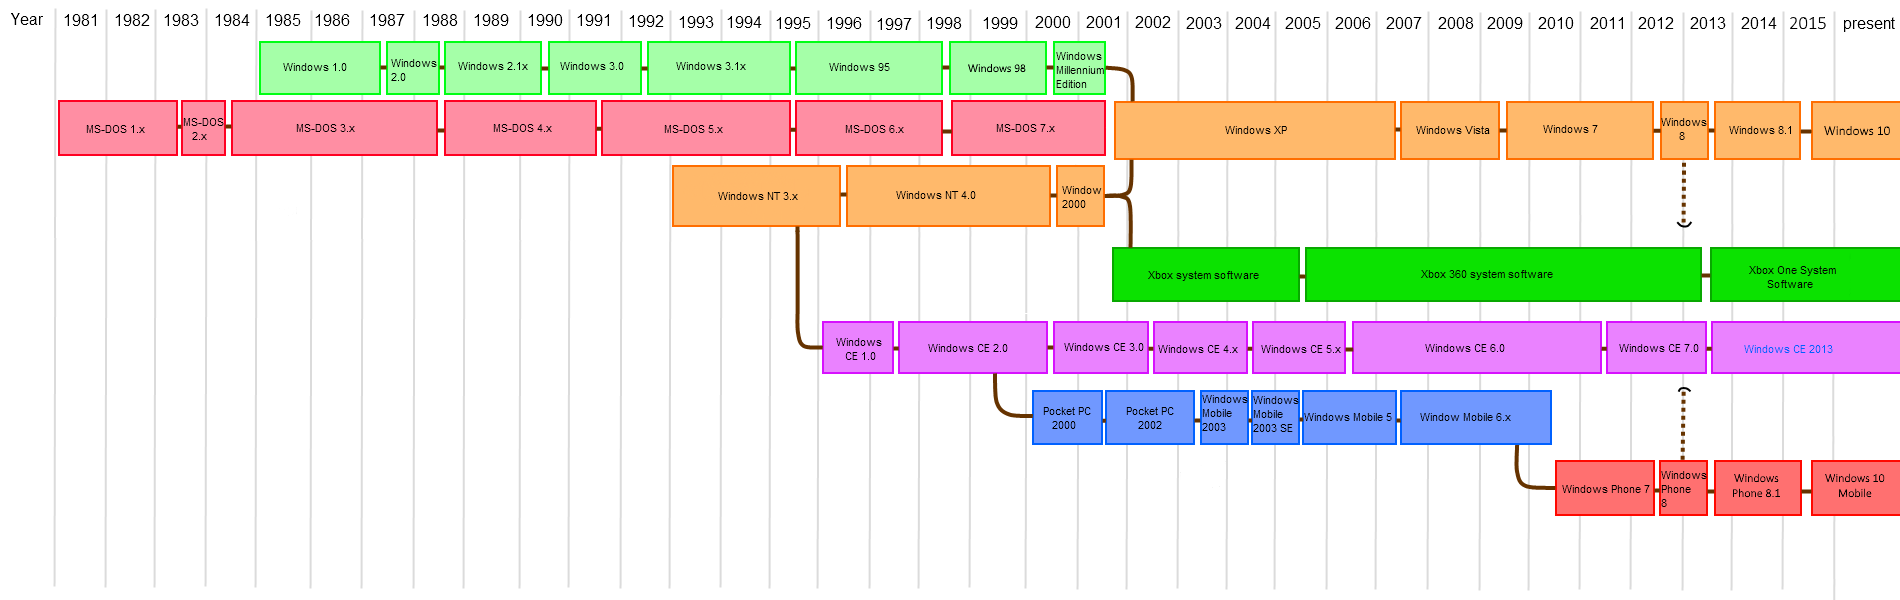 List of Microsoft operating systems - Wikipedia